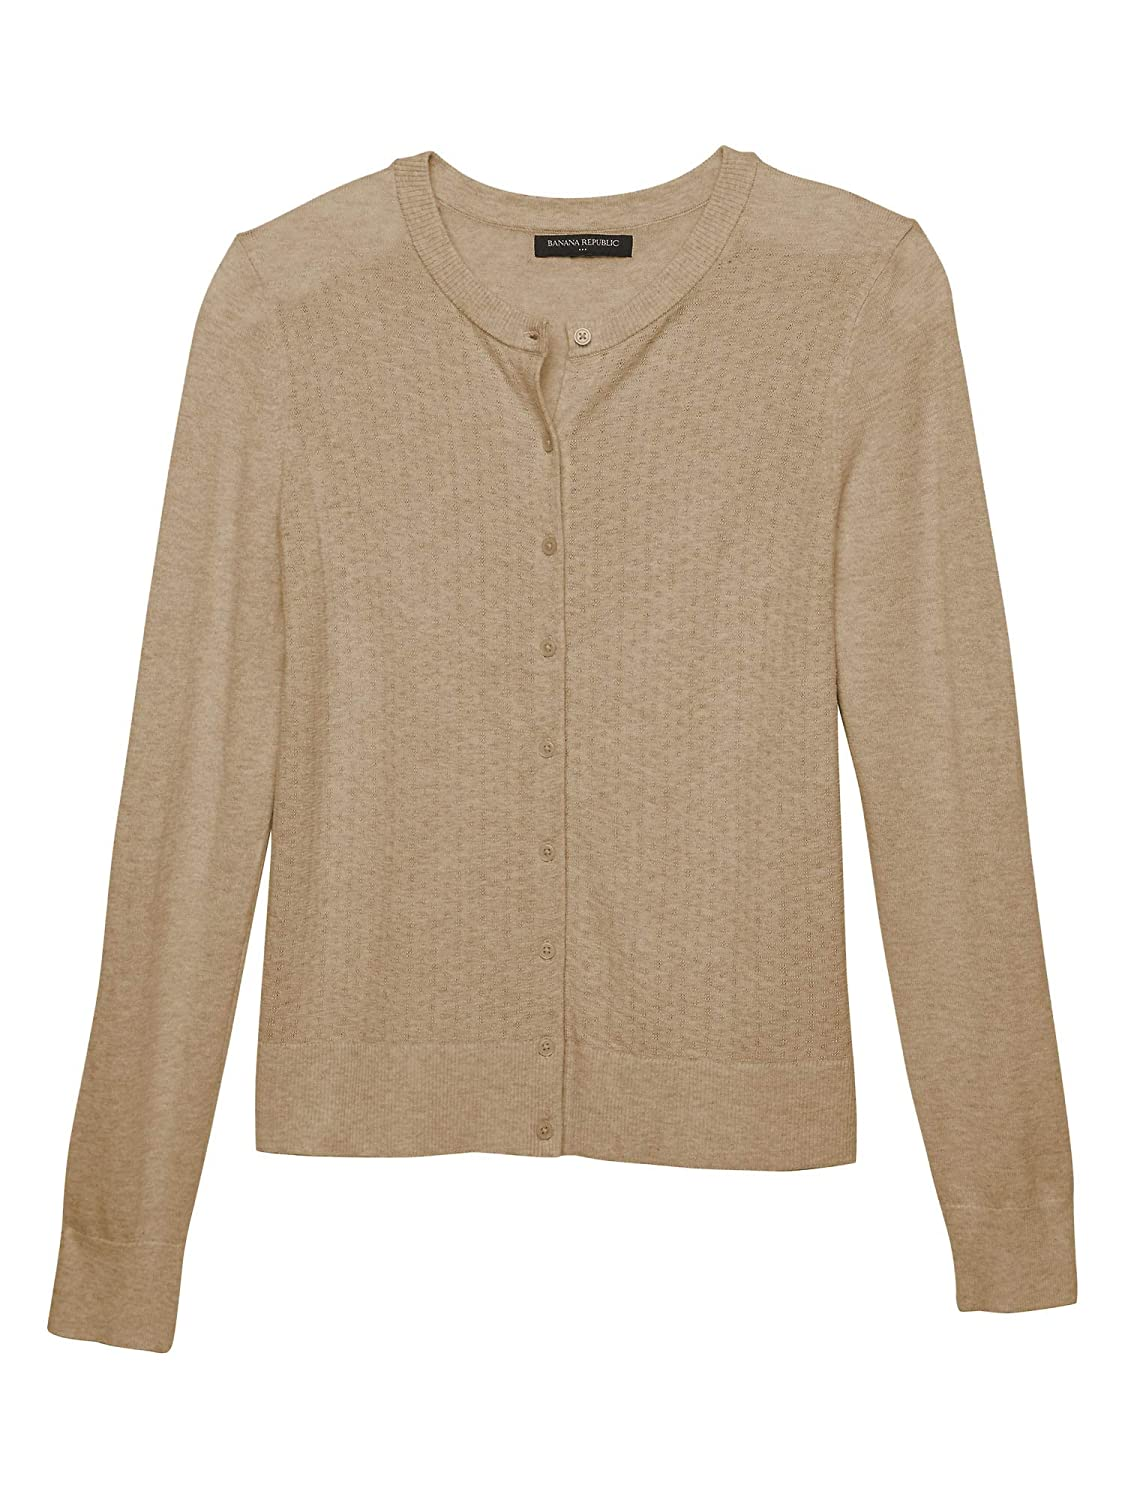 2a5e7fdd1ea Banana Republic Womens 333674 Forever Pointelle Knit Front Cardigan Sweater  Camel Beige (XX-Large) at Amazon Women s Clothing store